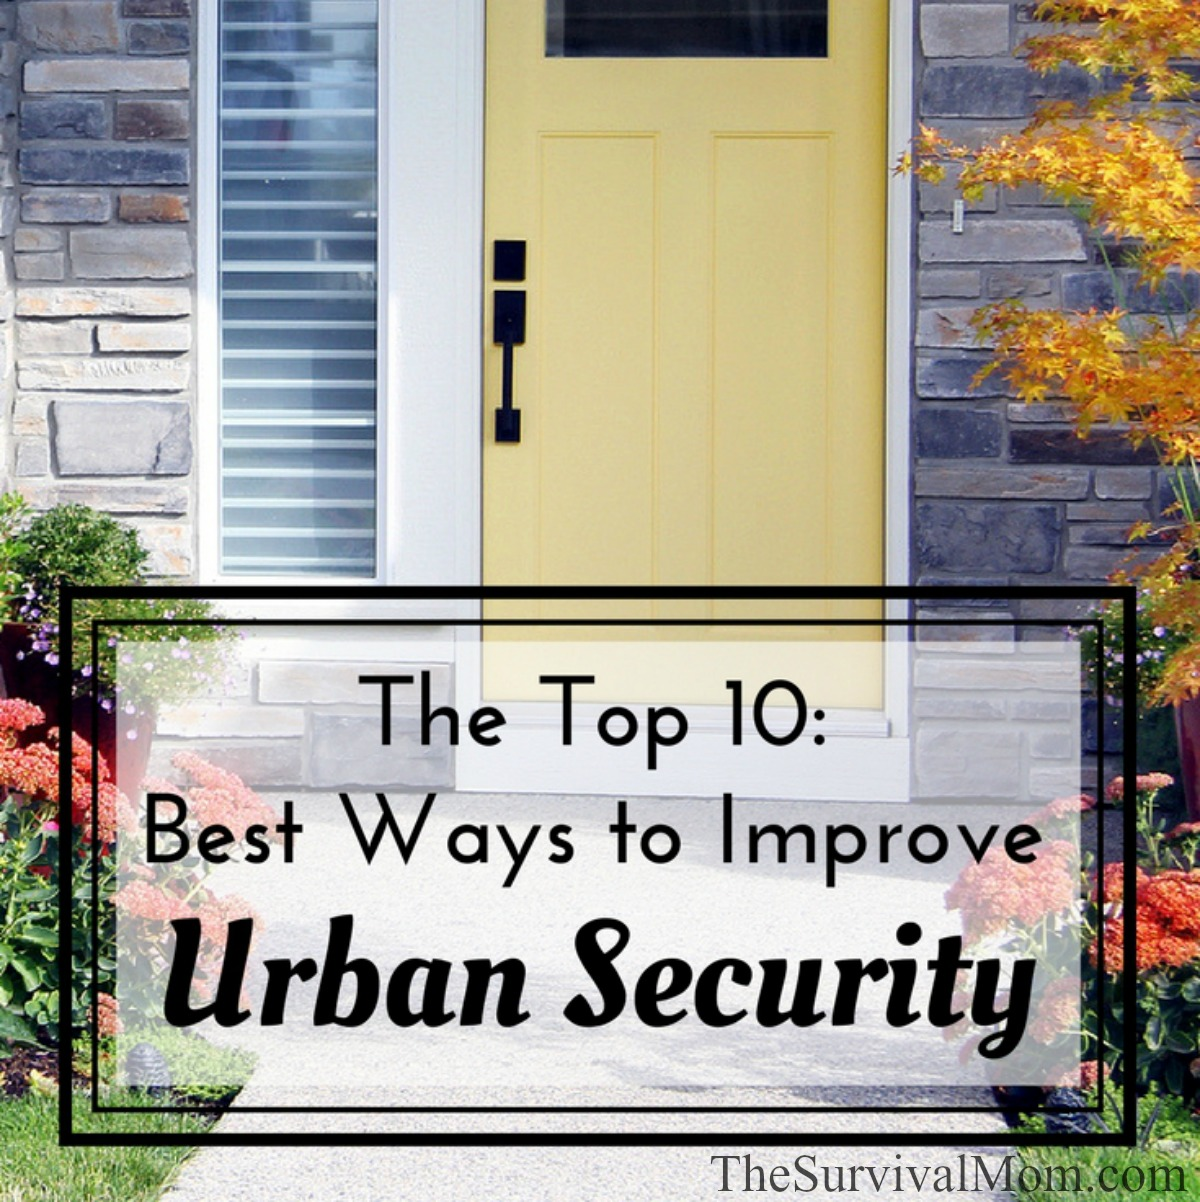 The Top 10: Best Ways to Improve Urban Security via The Survival Mom